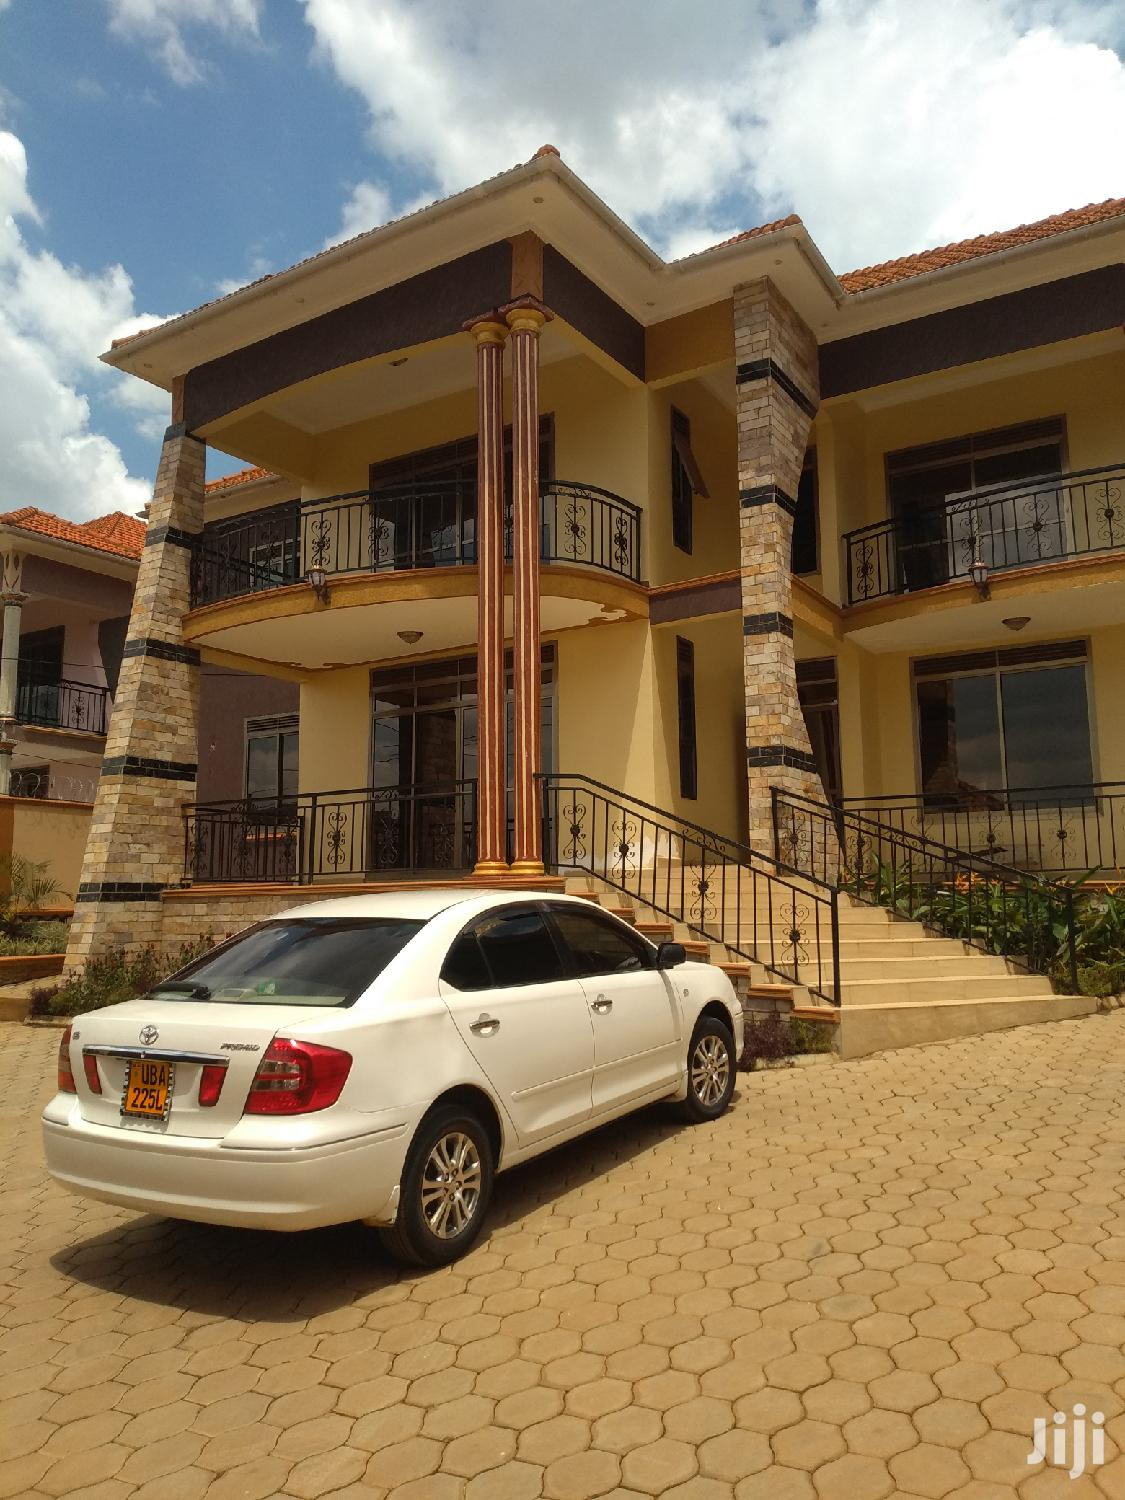 Great Kira House for Sale With Ready Land Title | Houses & Apartments For Sale for sale in Kampala, Central Region, Uganda